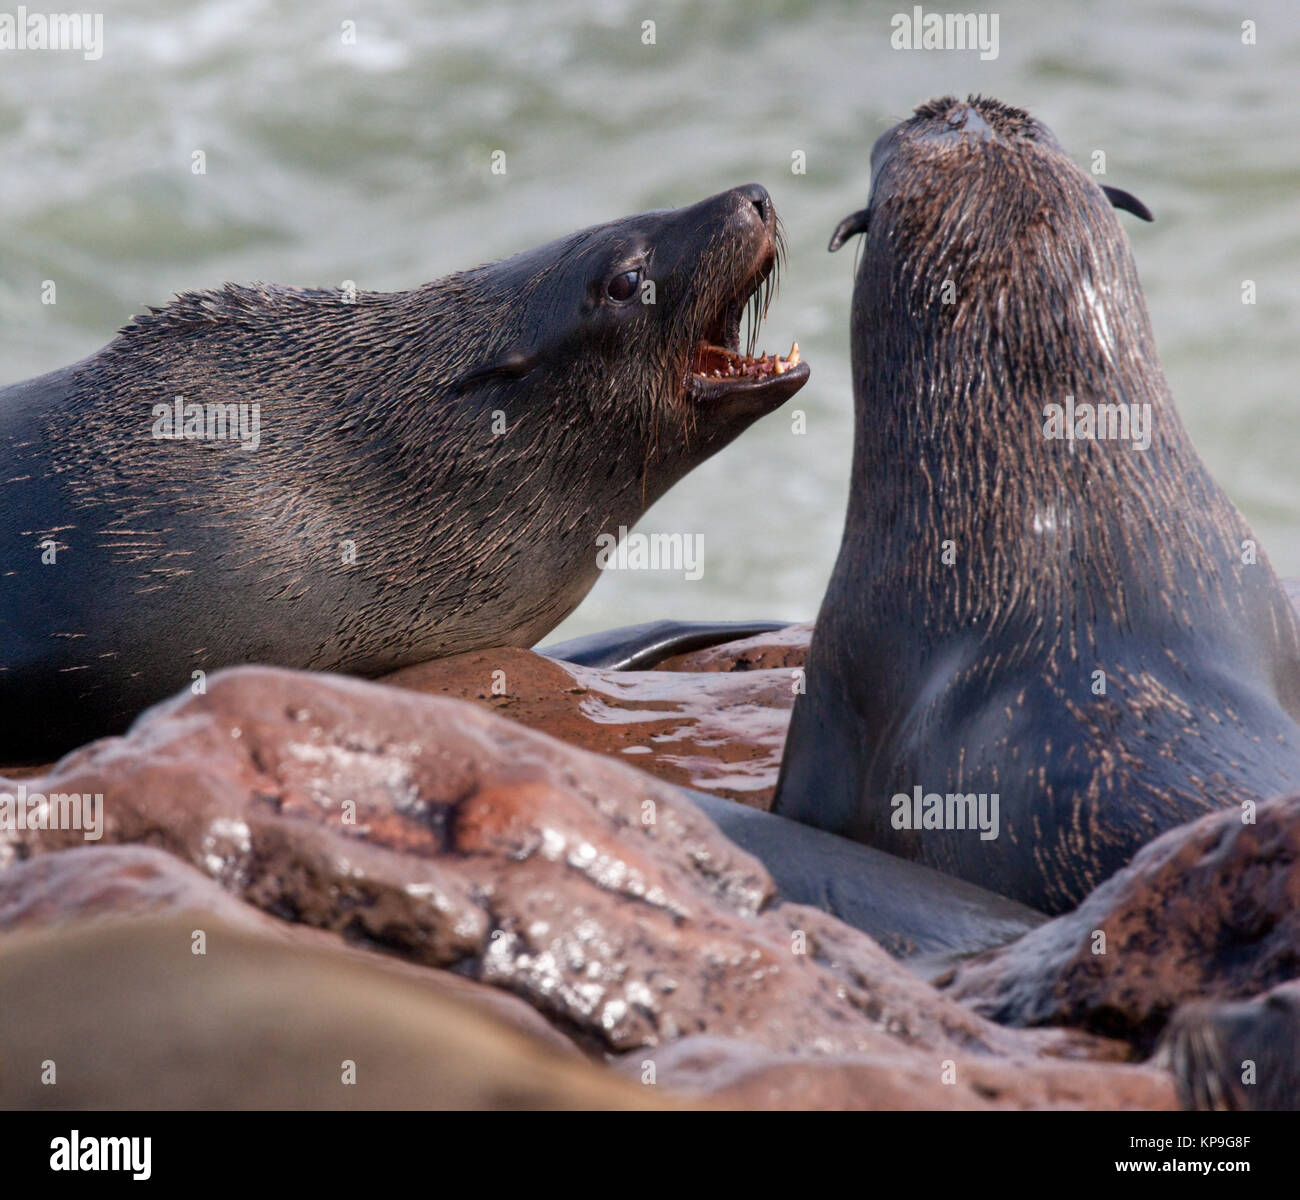 Cape Fur Seals (Arctocephalus pusillus) at Cape Cross on the coast of Namibia. - Stock Image